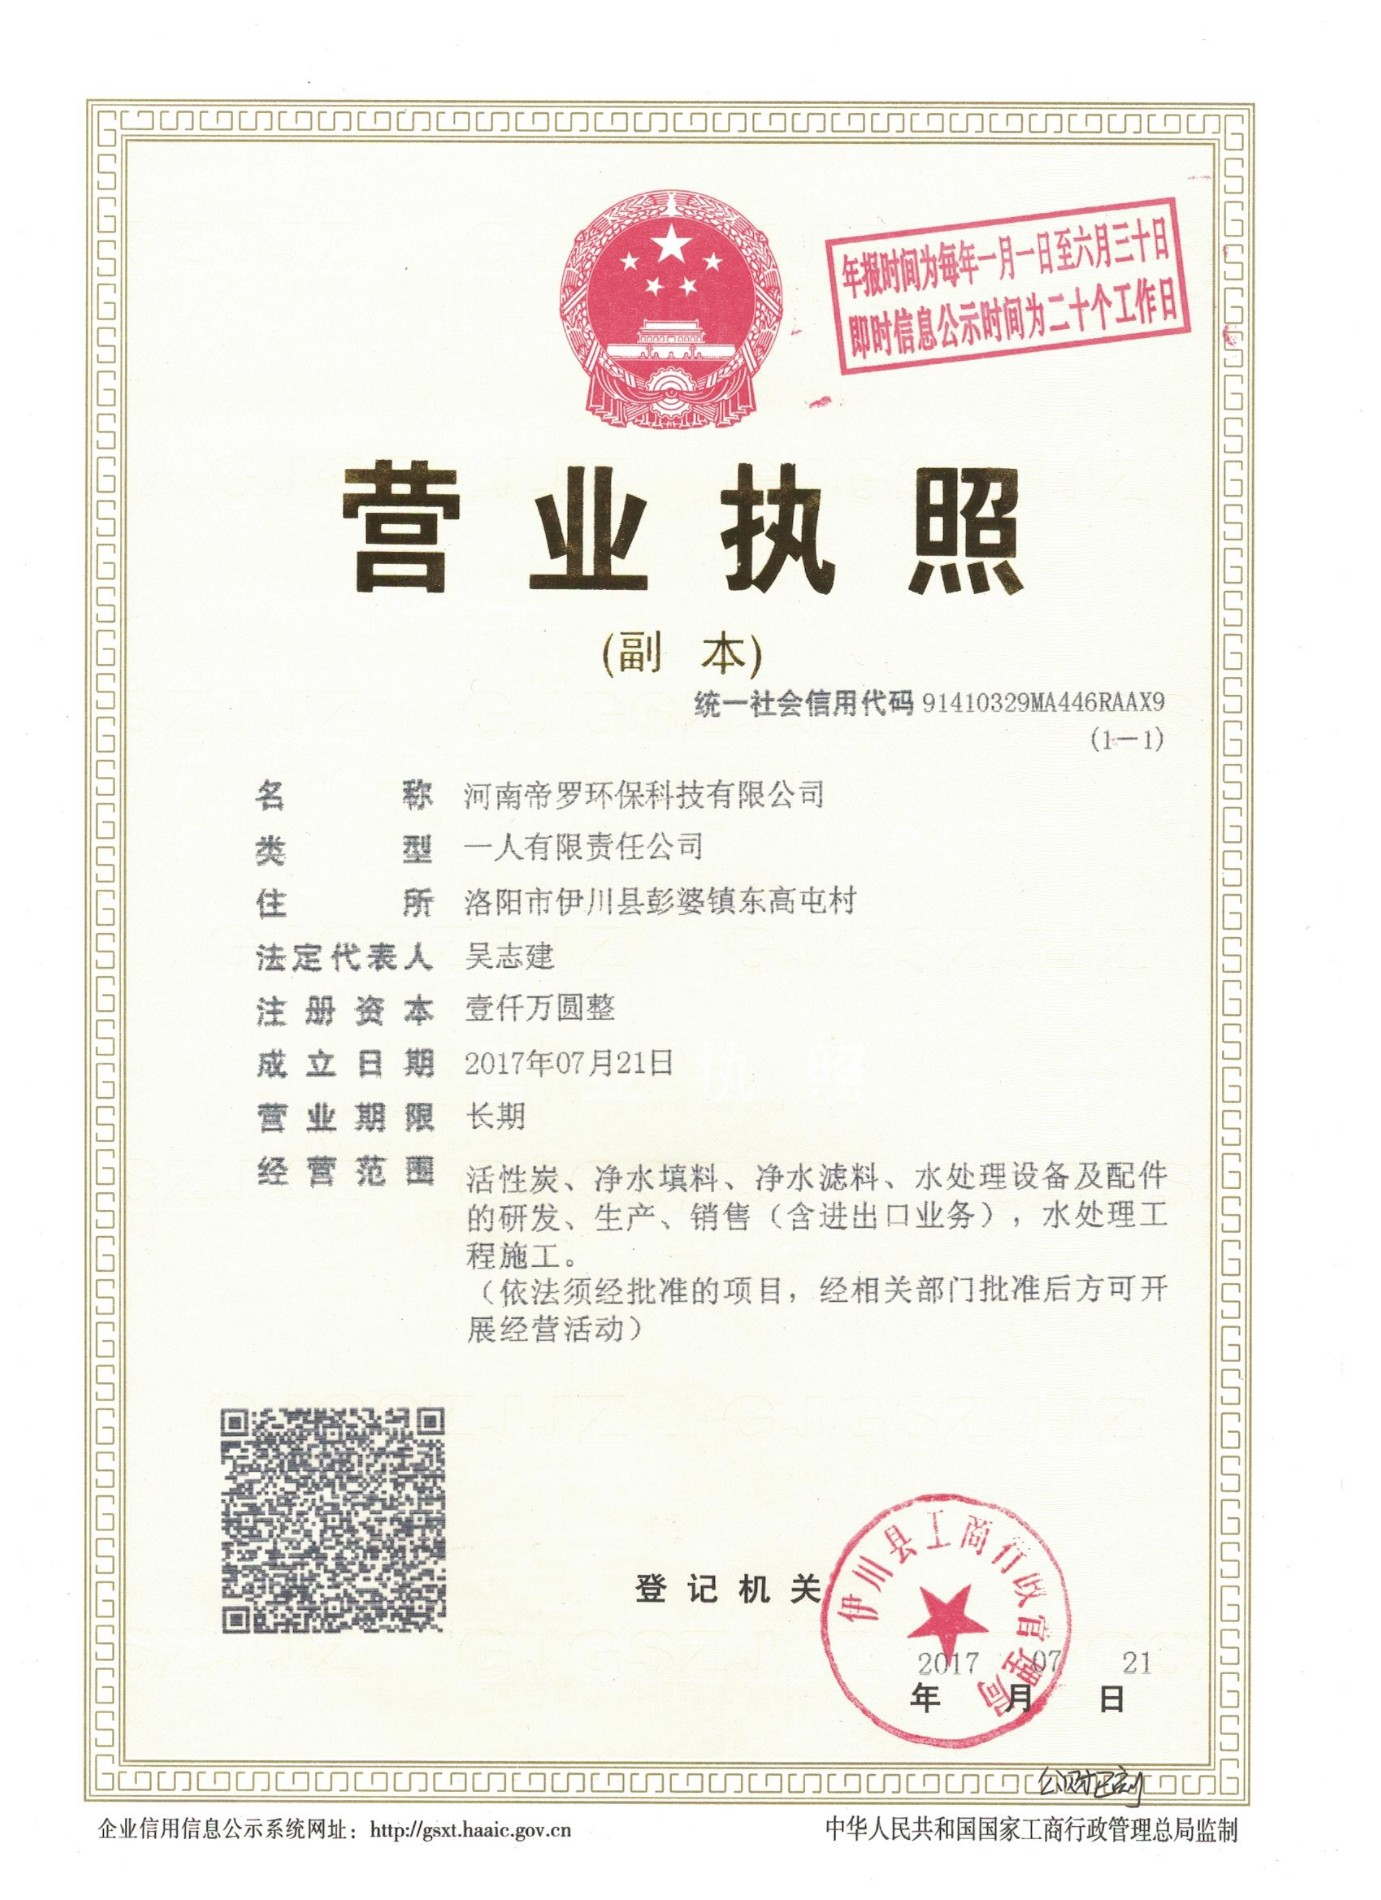 We are top companies about water treatment filter media. We have Production and operation license